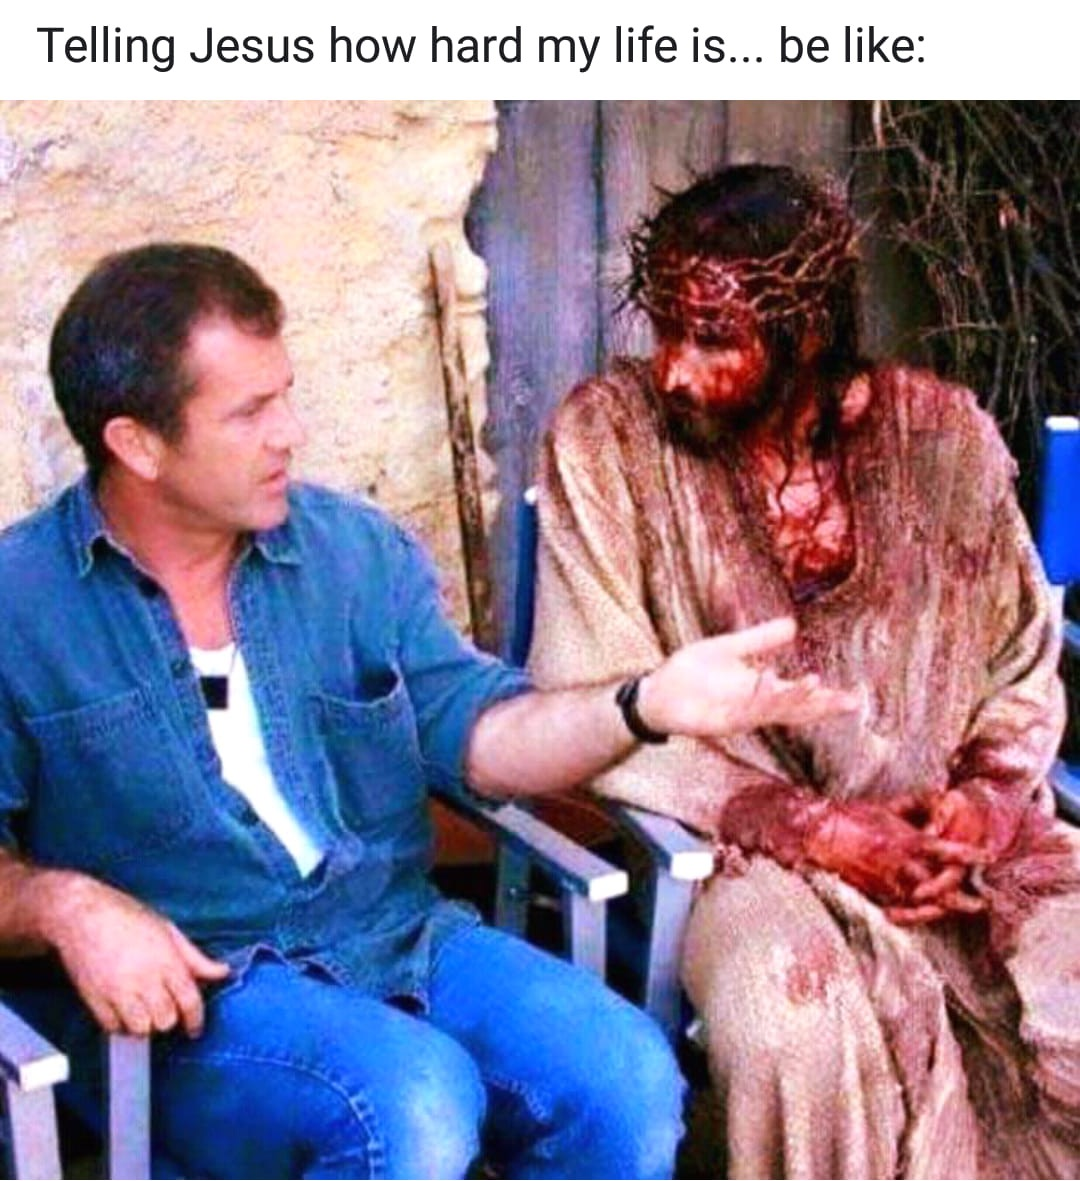 Photo telling of suffering to Jesus Facebook posted